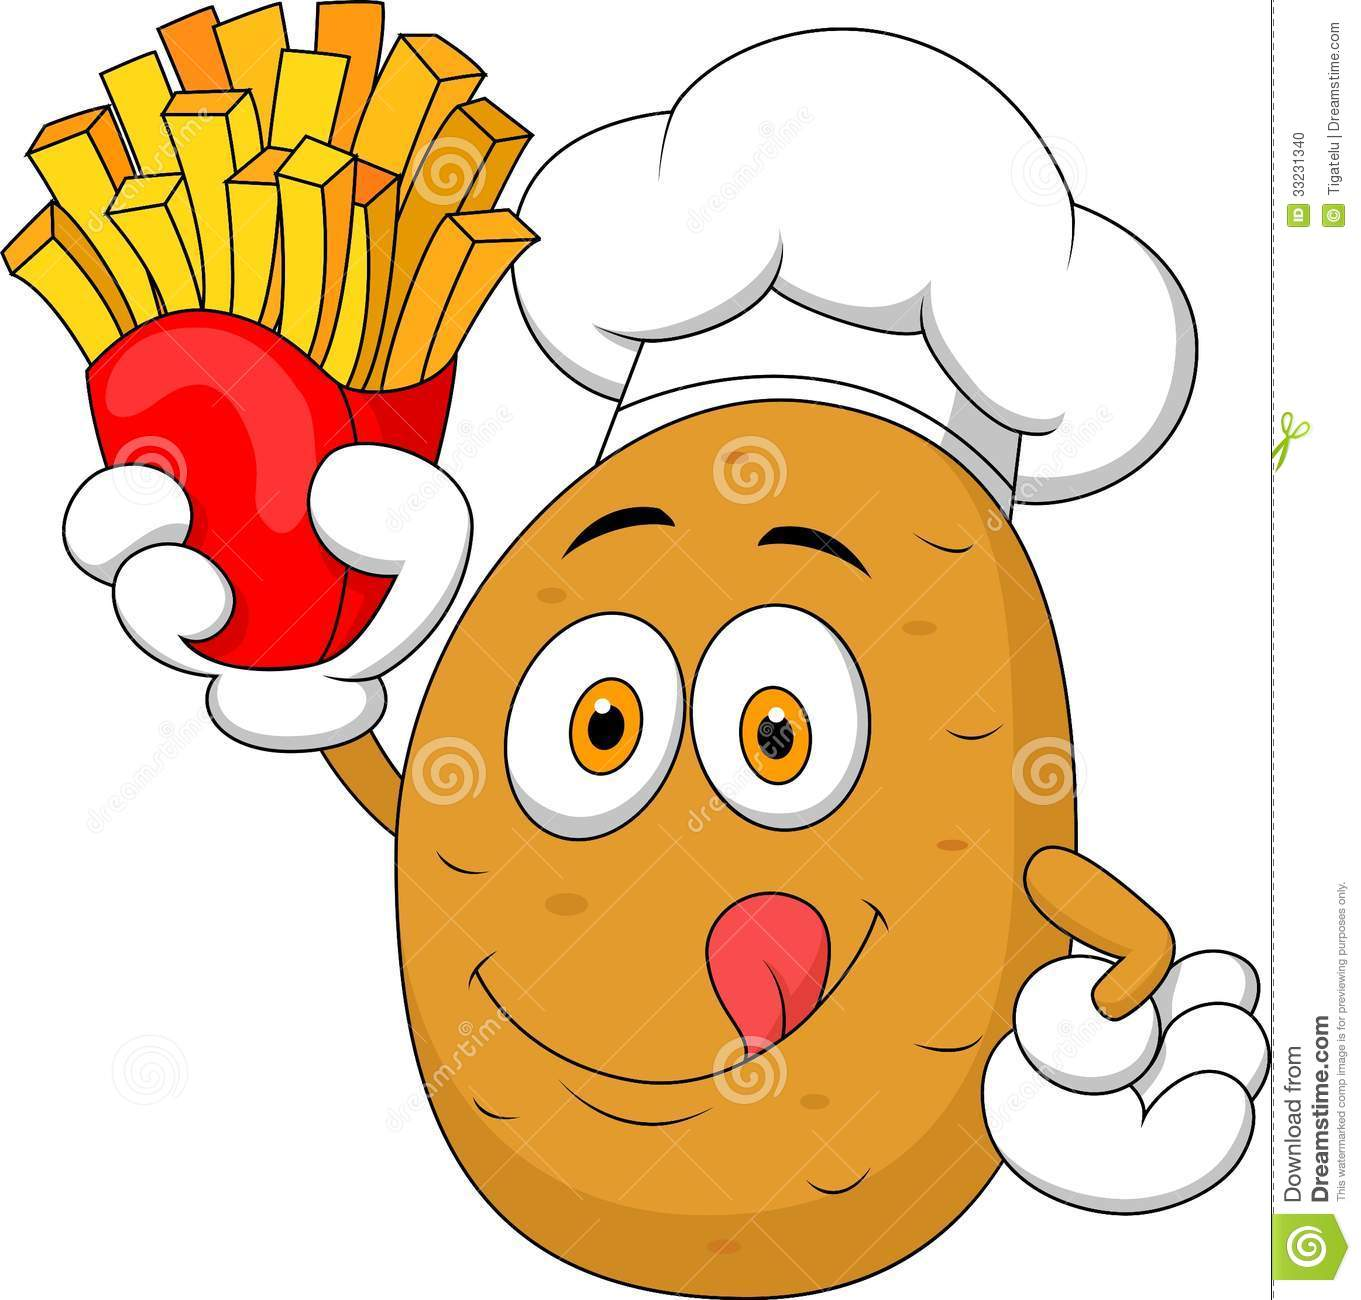 Mr chef head clipart png Potato Chef Cartoon Holding Up A French Fries Stock Photo - Image ... png